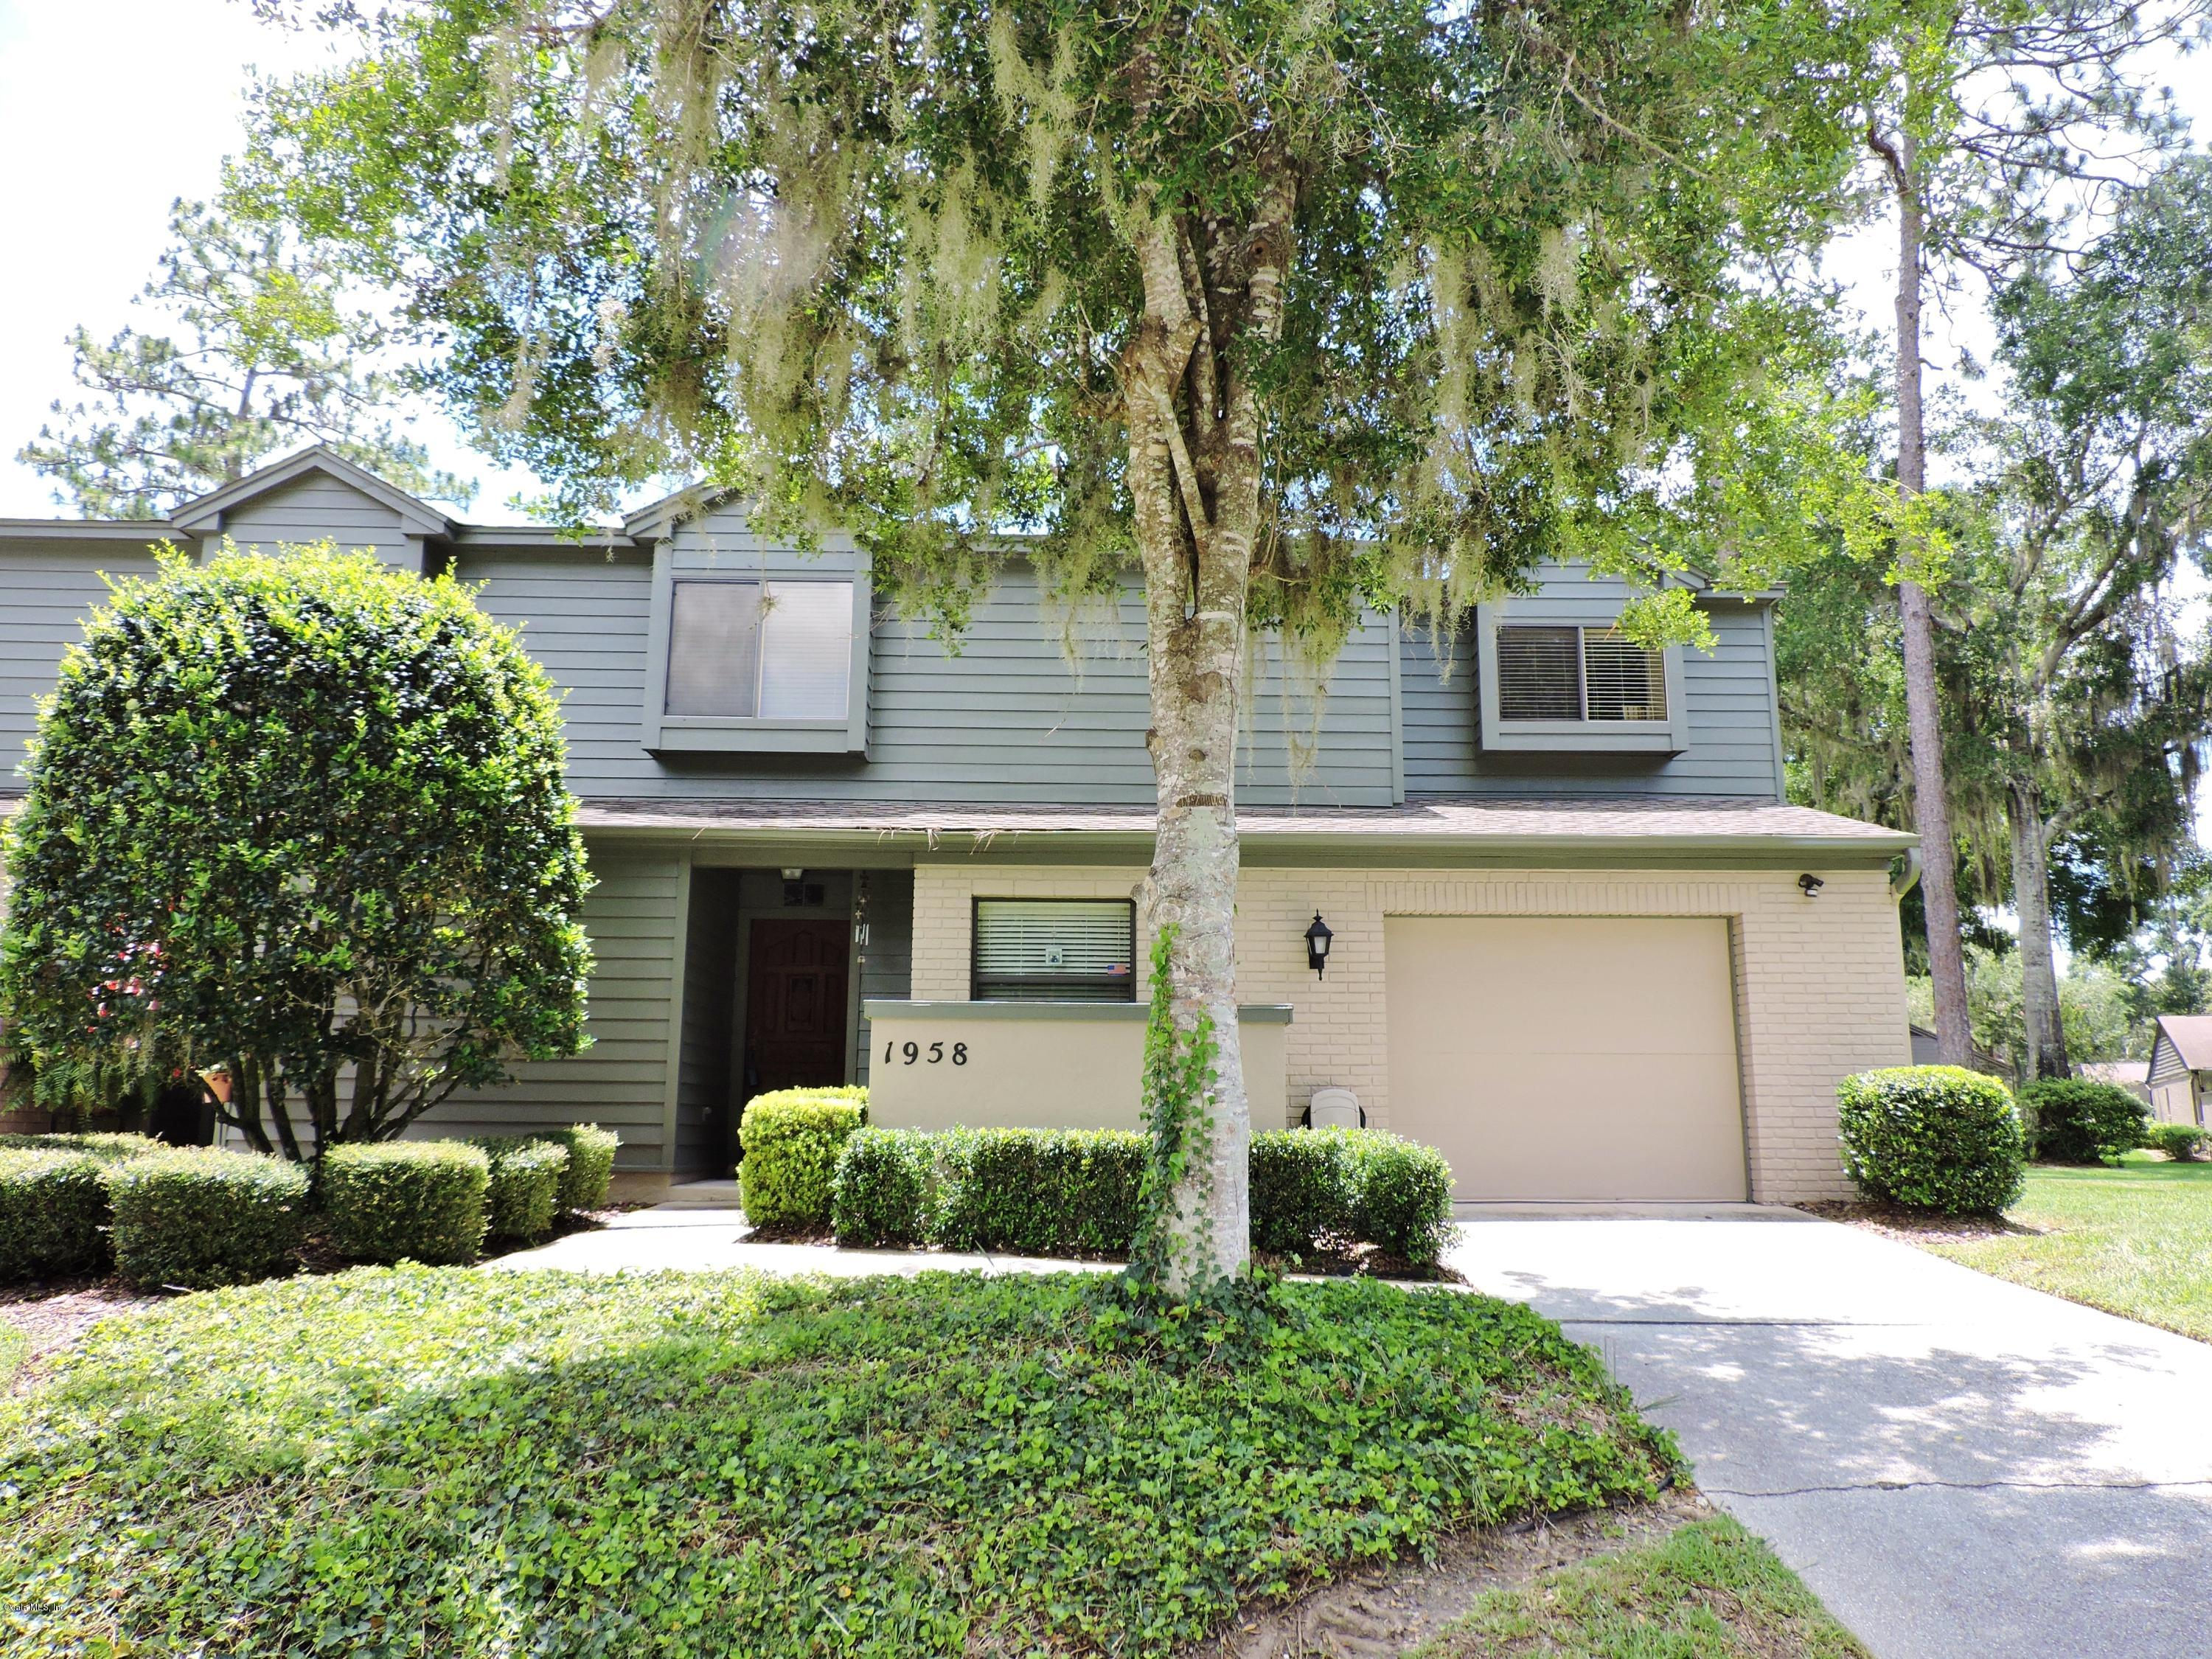 1958 SE 37 CT CIR, OCALA, FL 34471